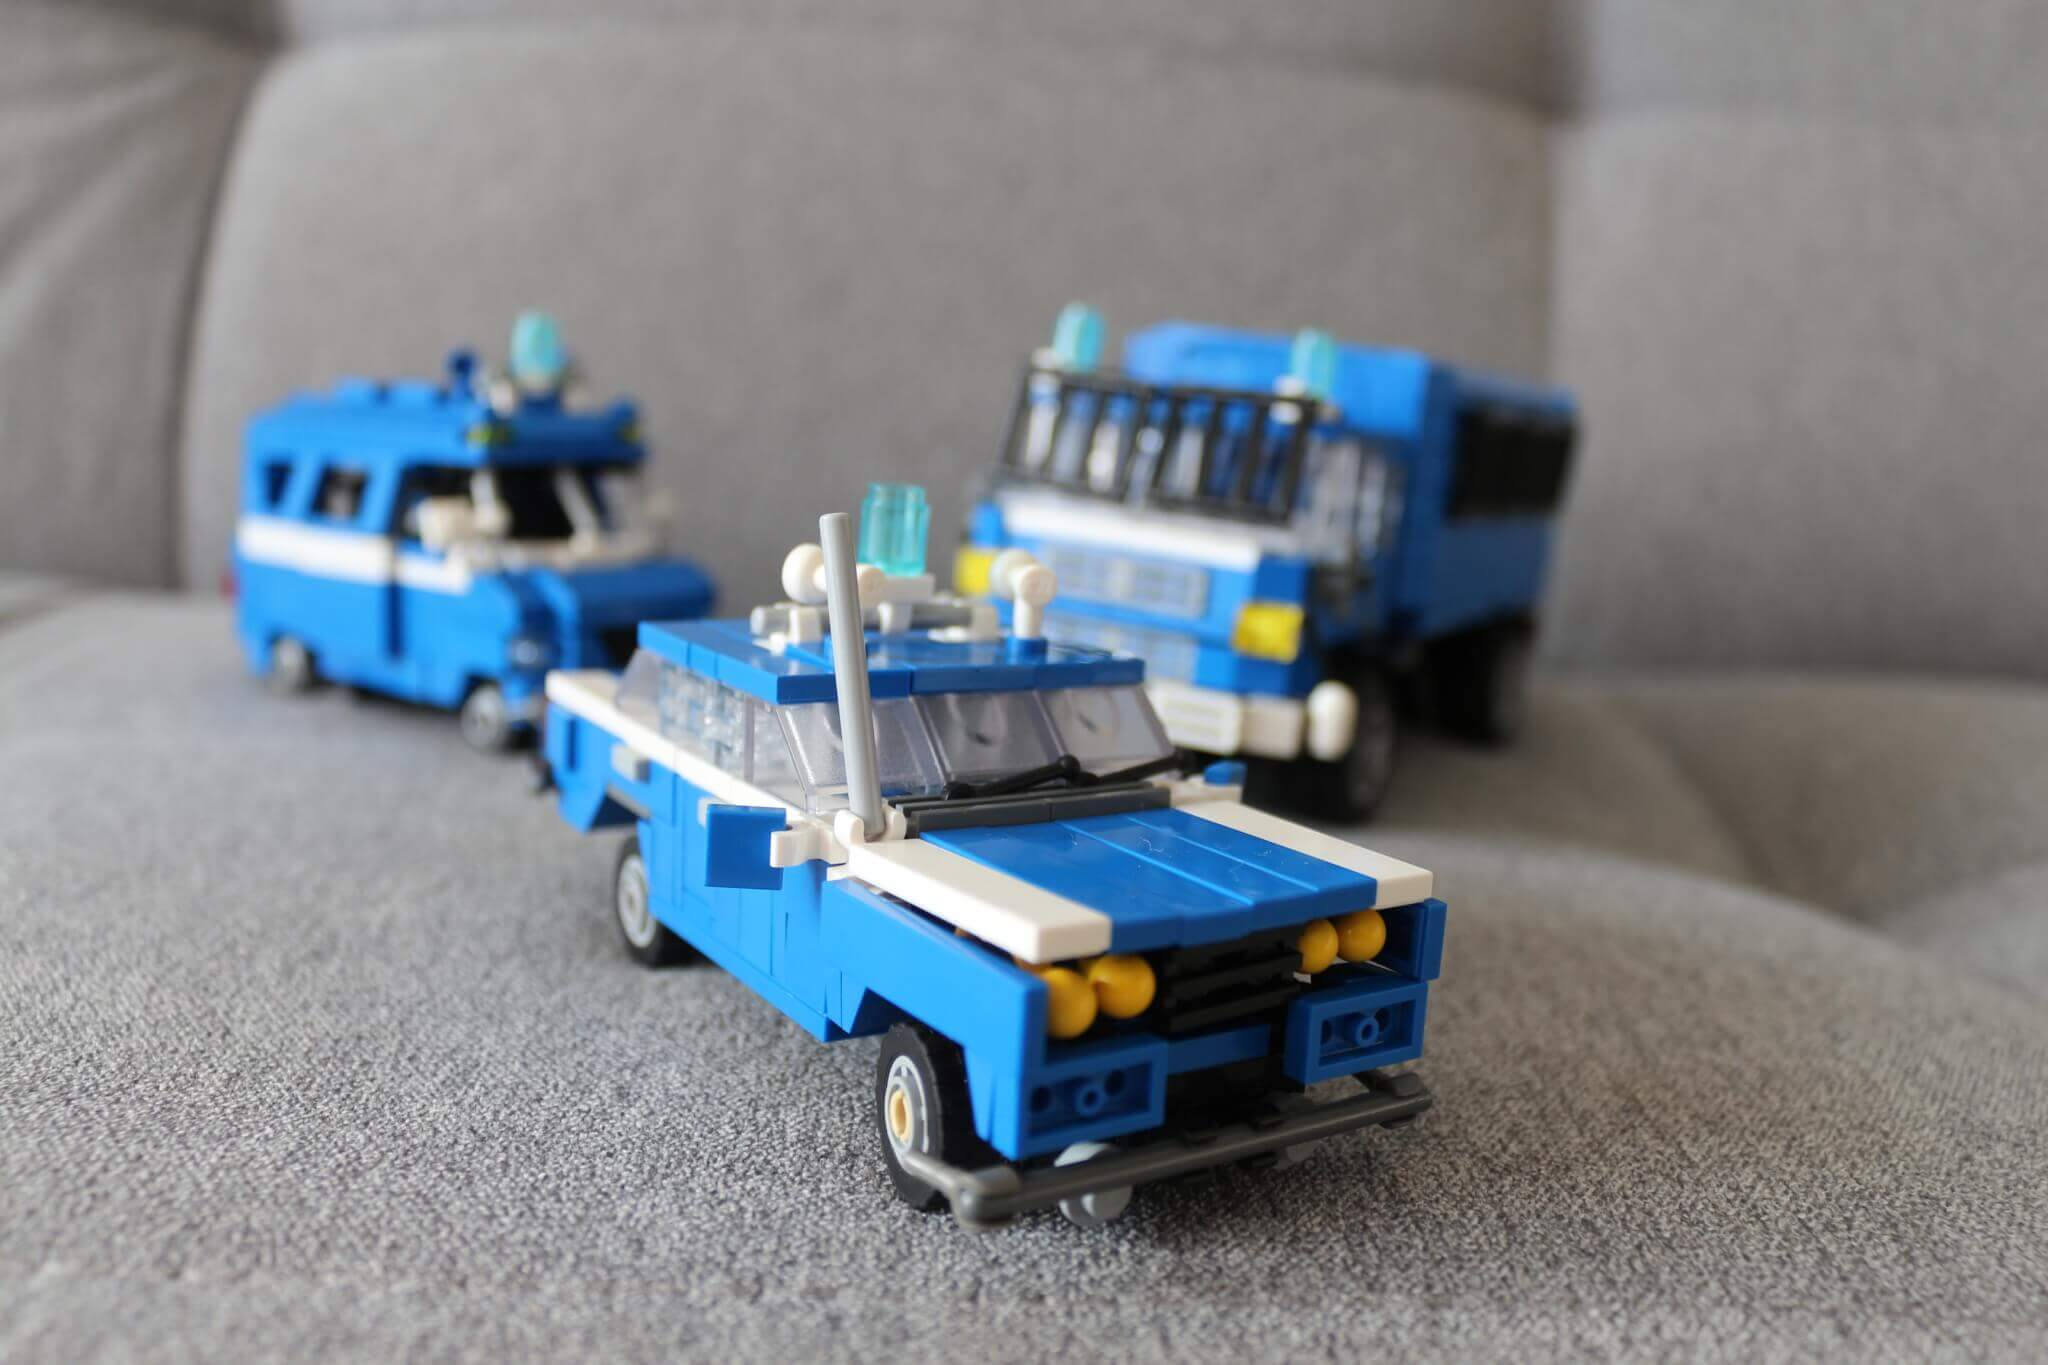 Lego Car Models Police Militia When Solidarnosc Fight With Communism